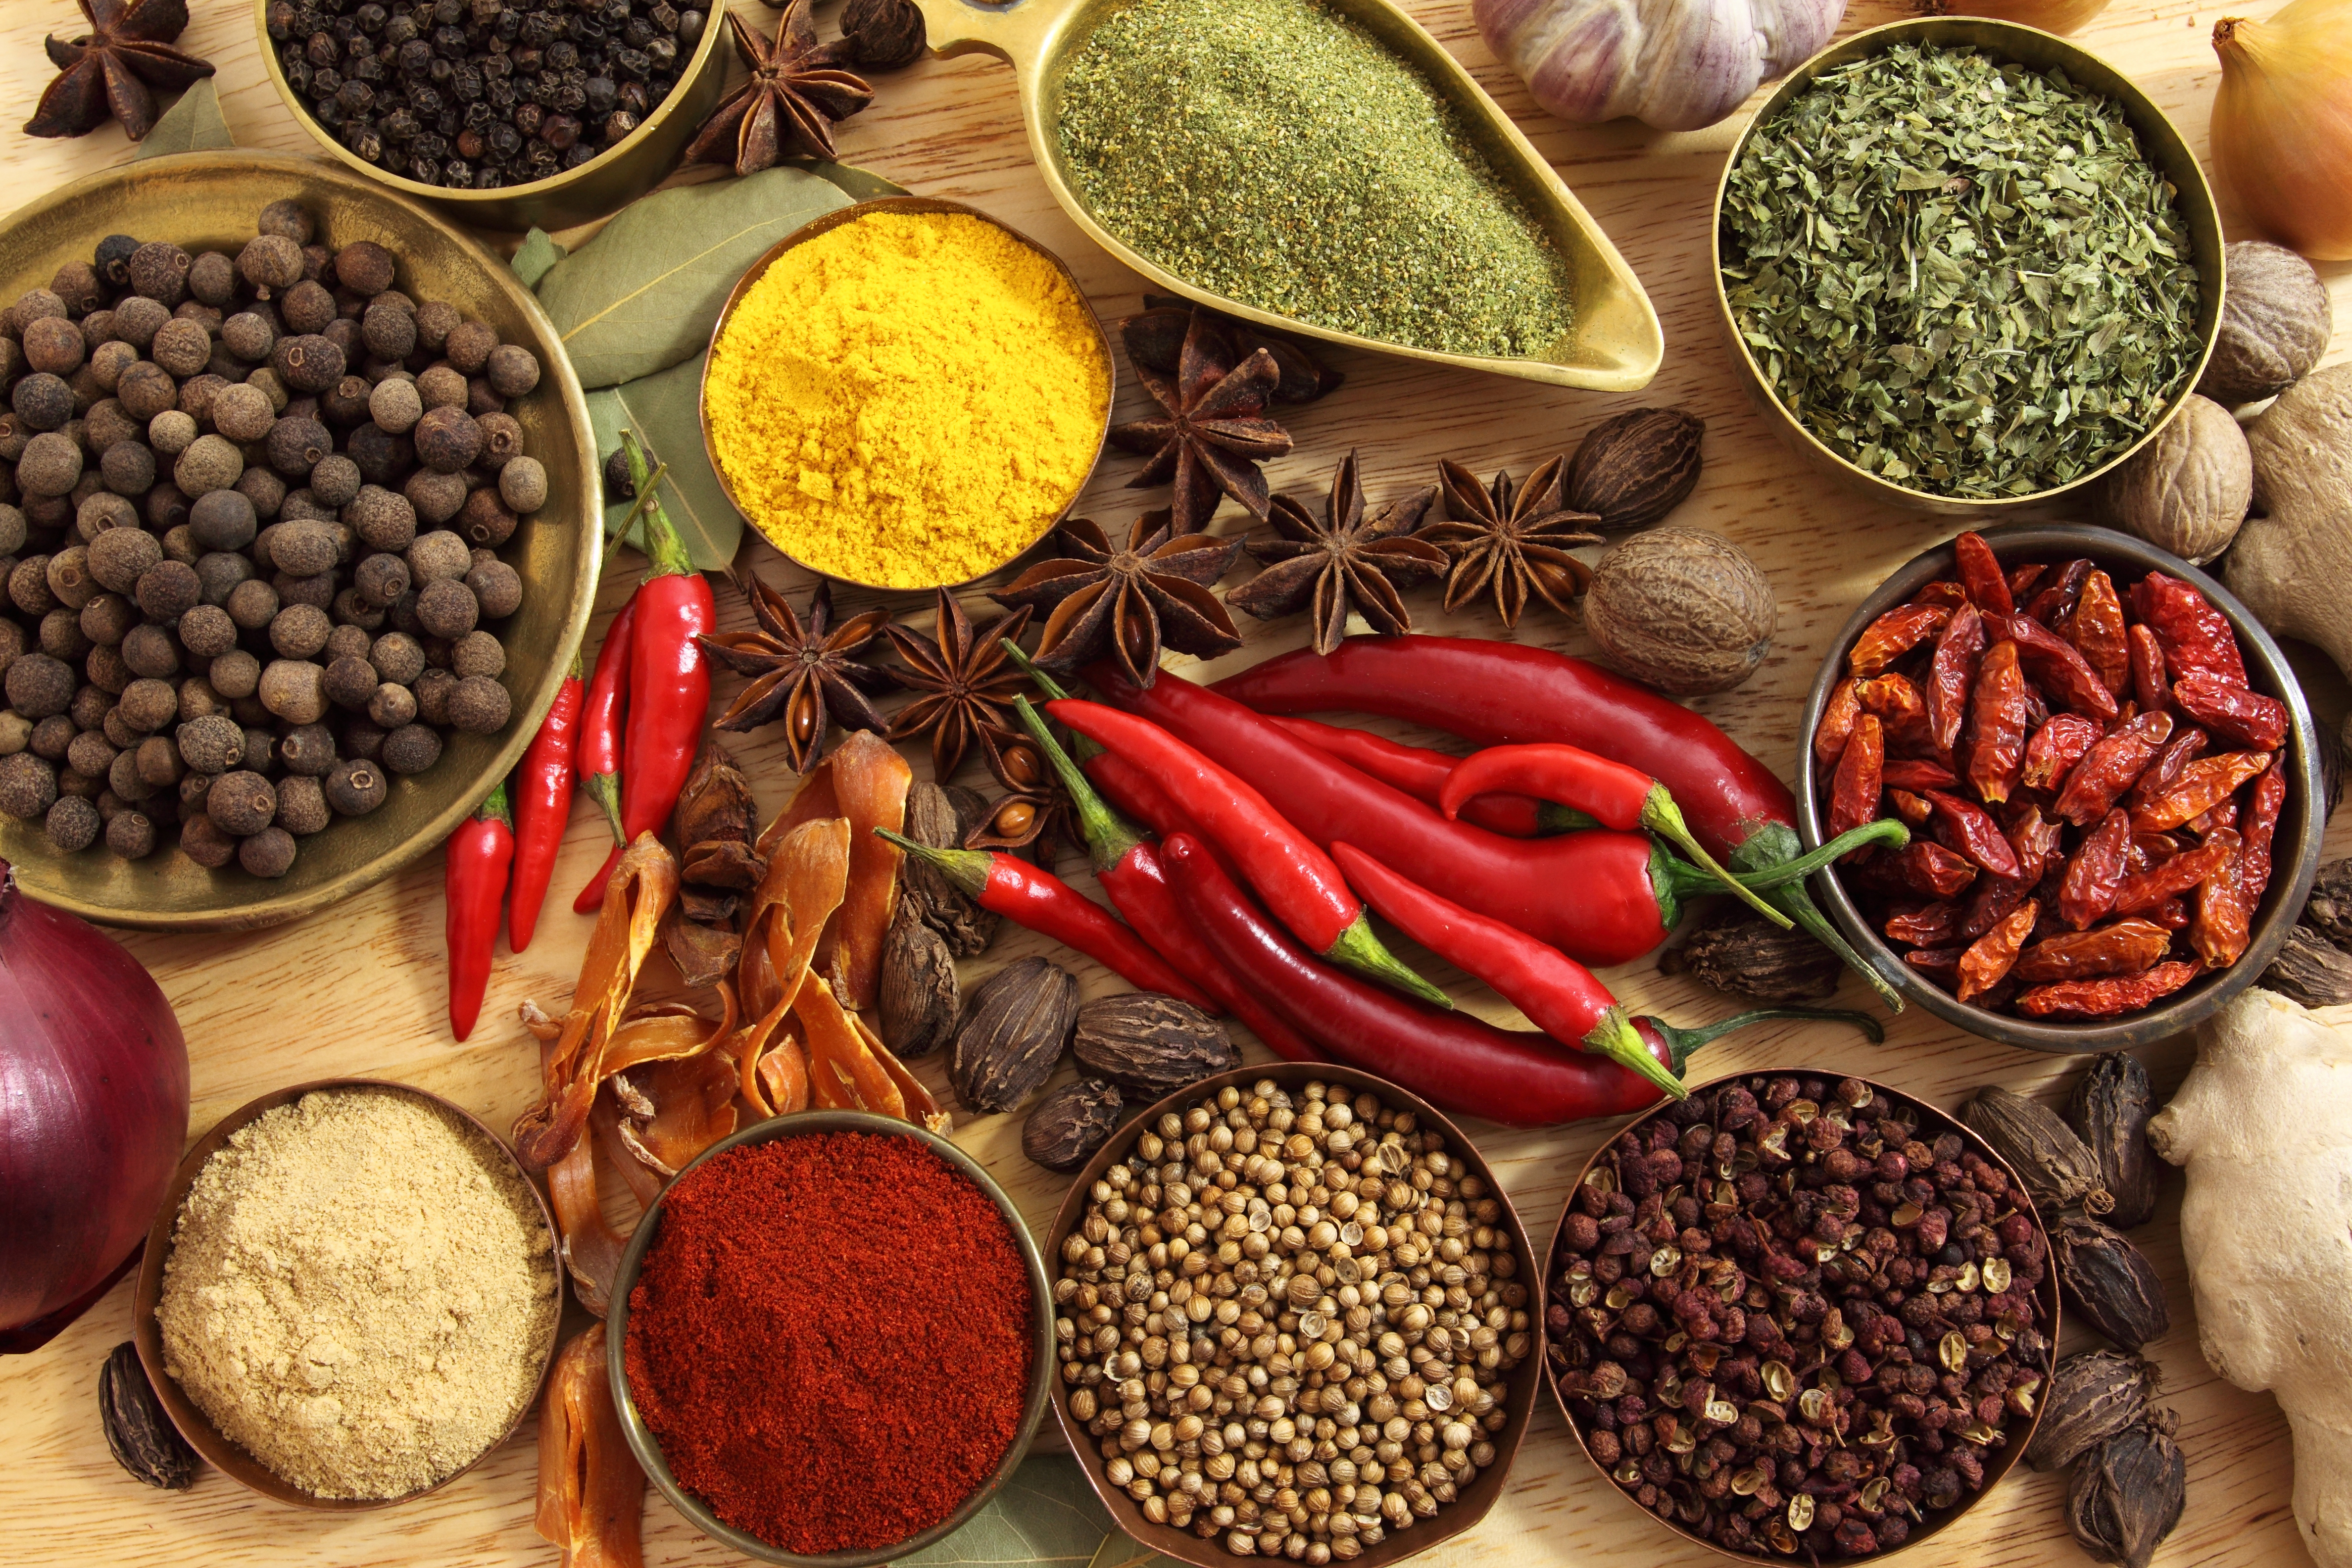 Table of herbs and spices